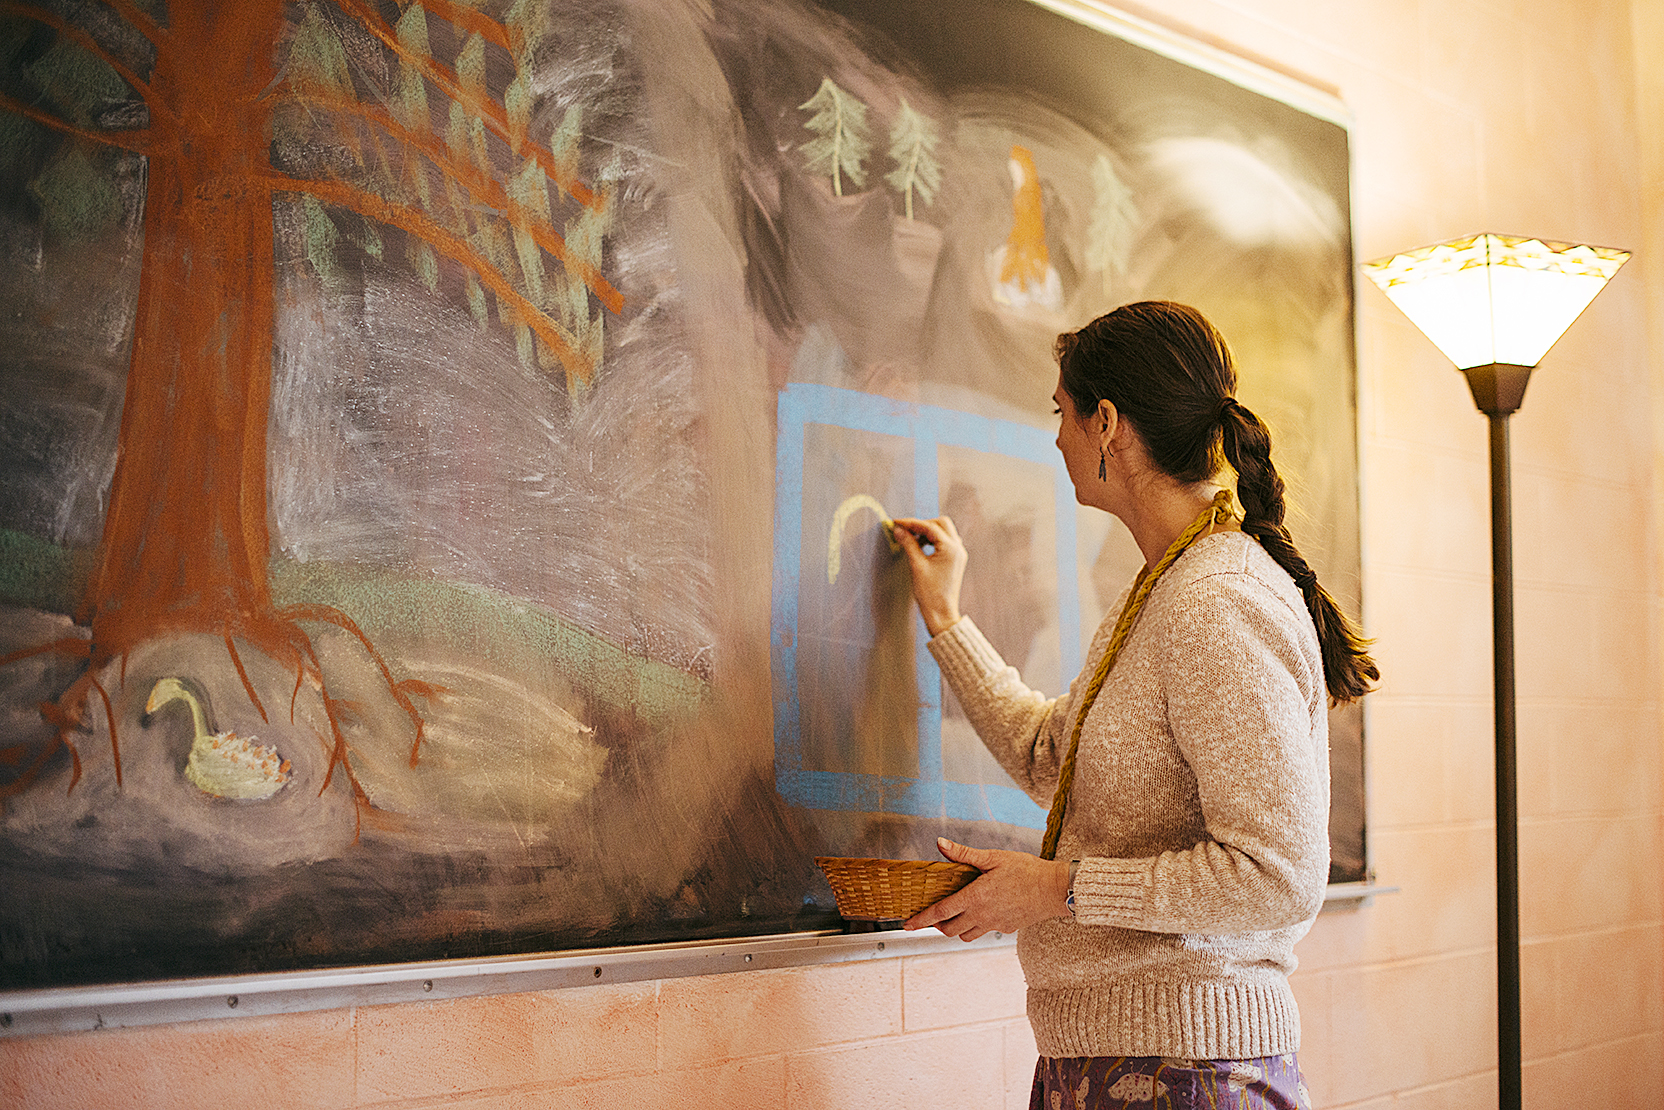 teacher drawing on chalkboard.jpg